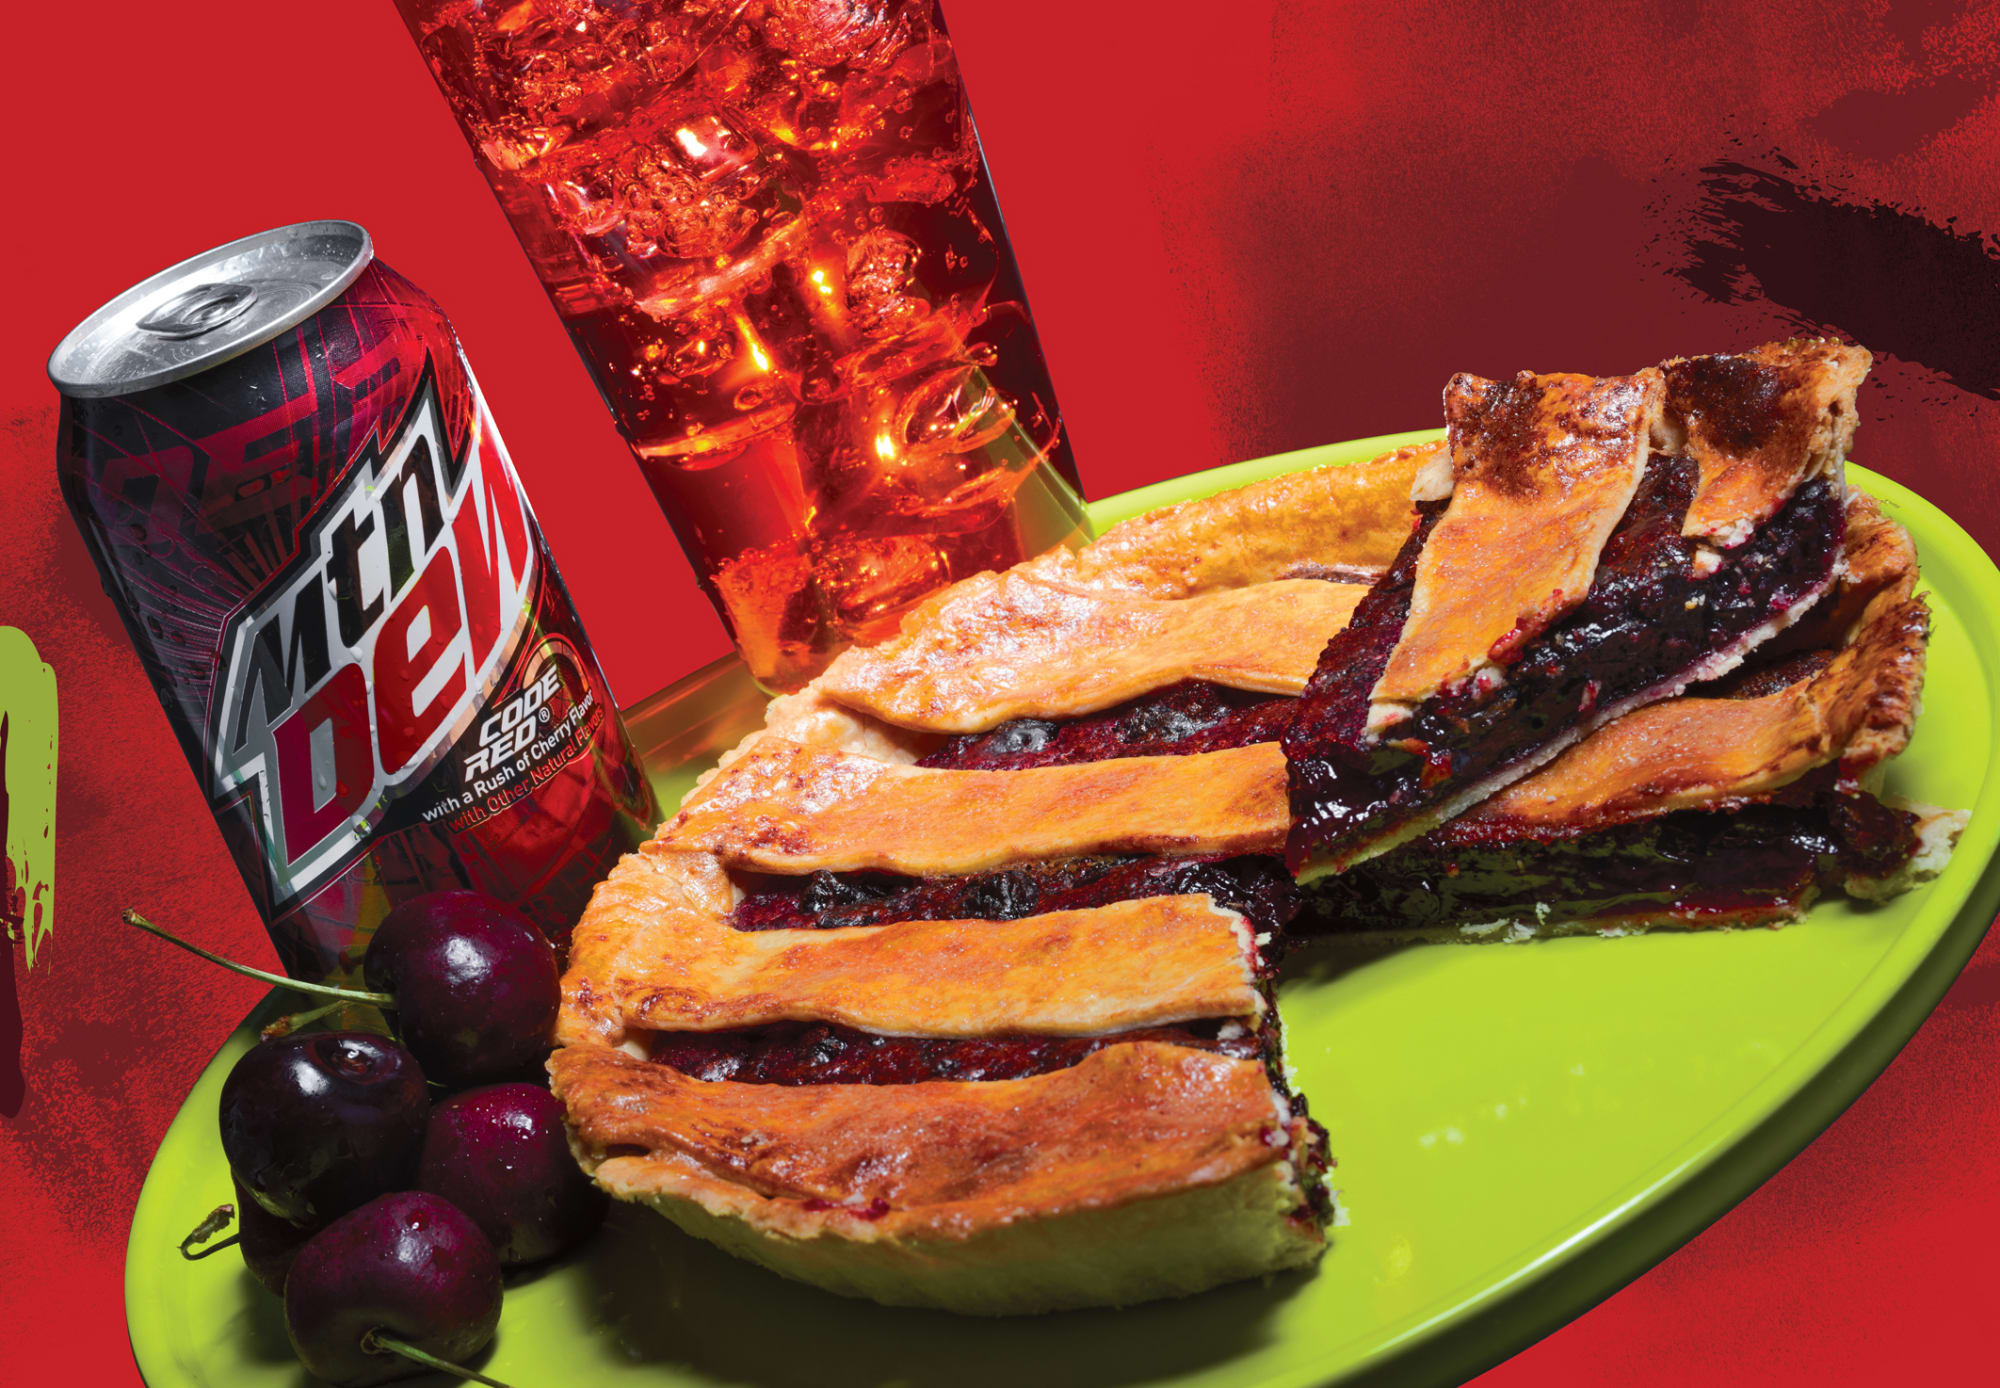 MTN DEW Code Red Cherry Pie is tastier than grandma's pie recipe